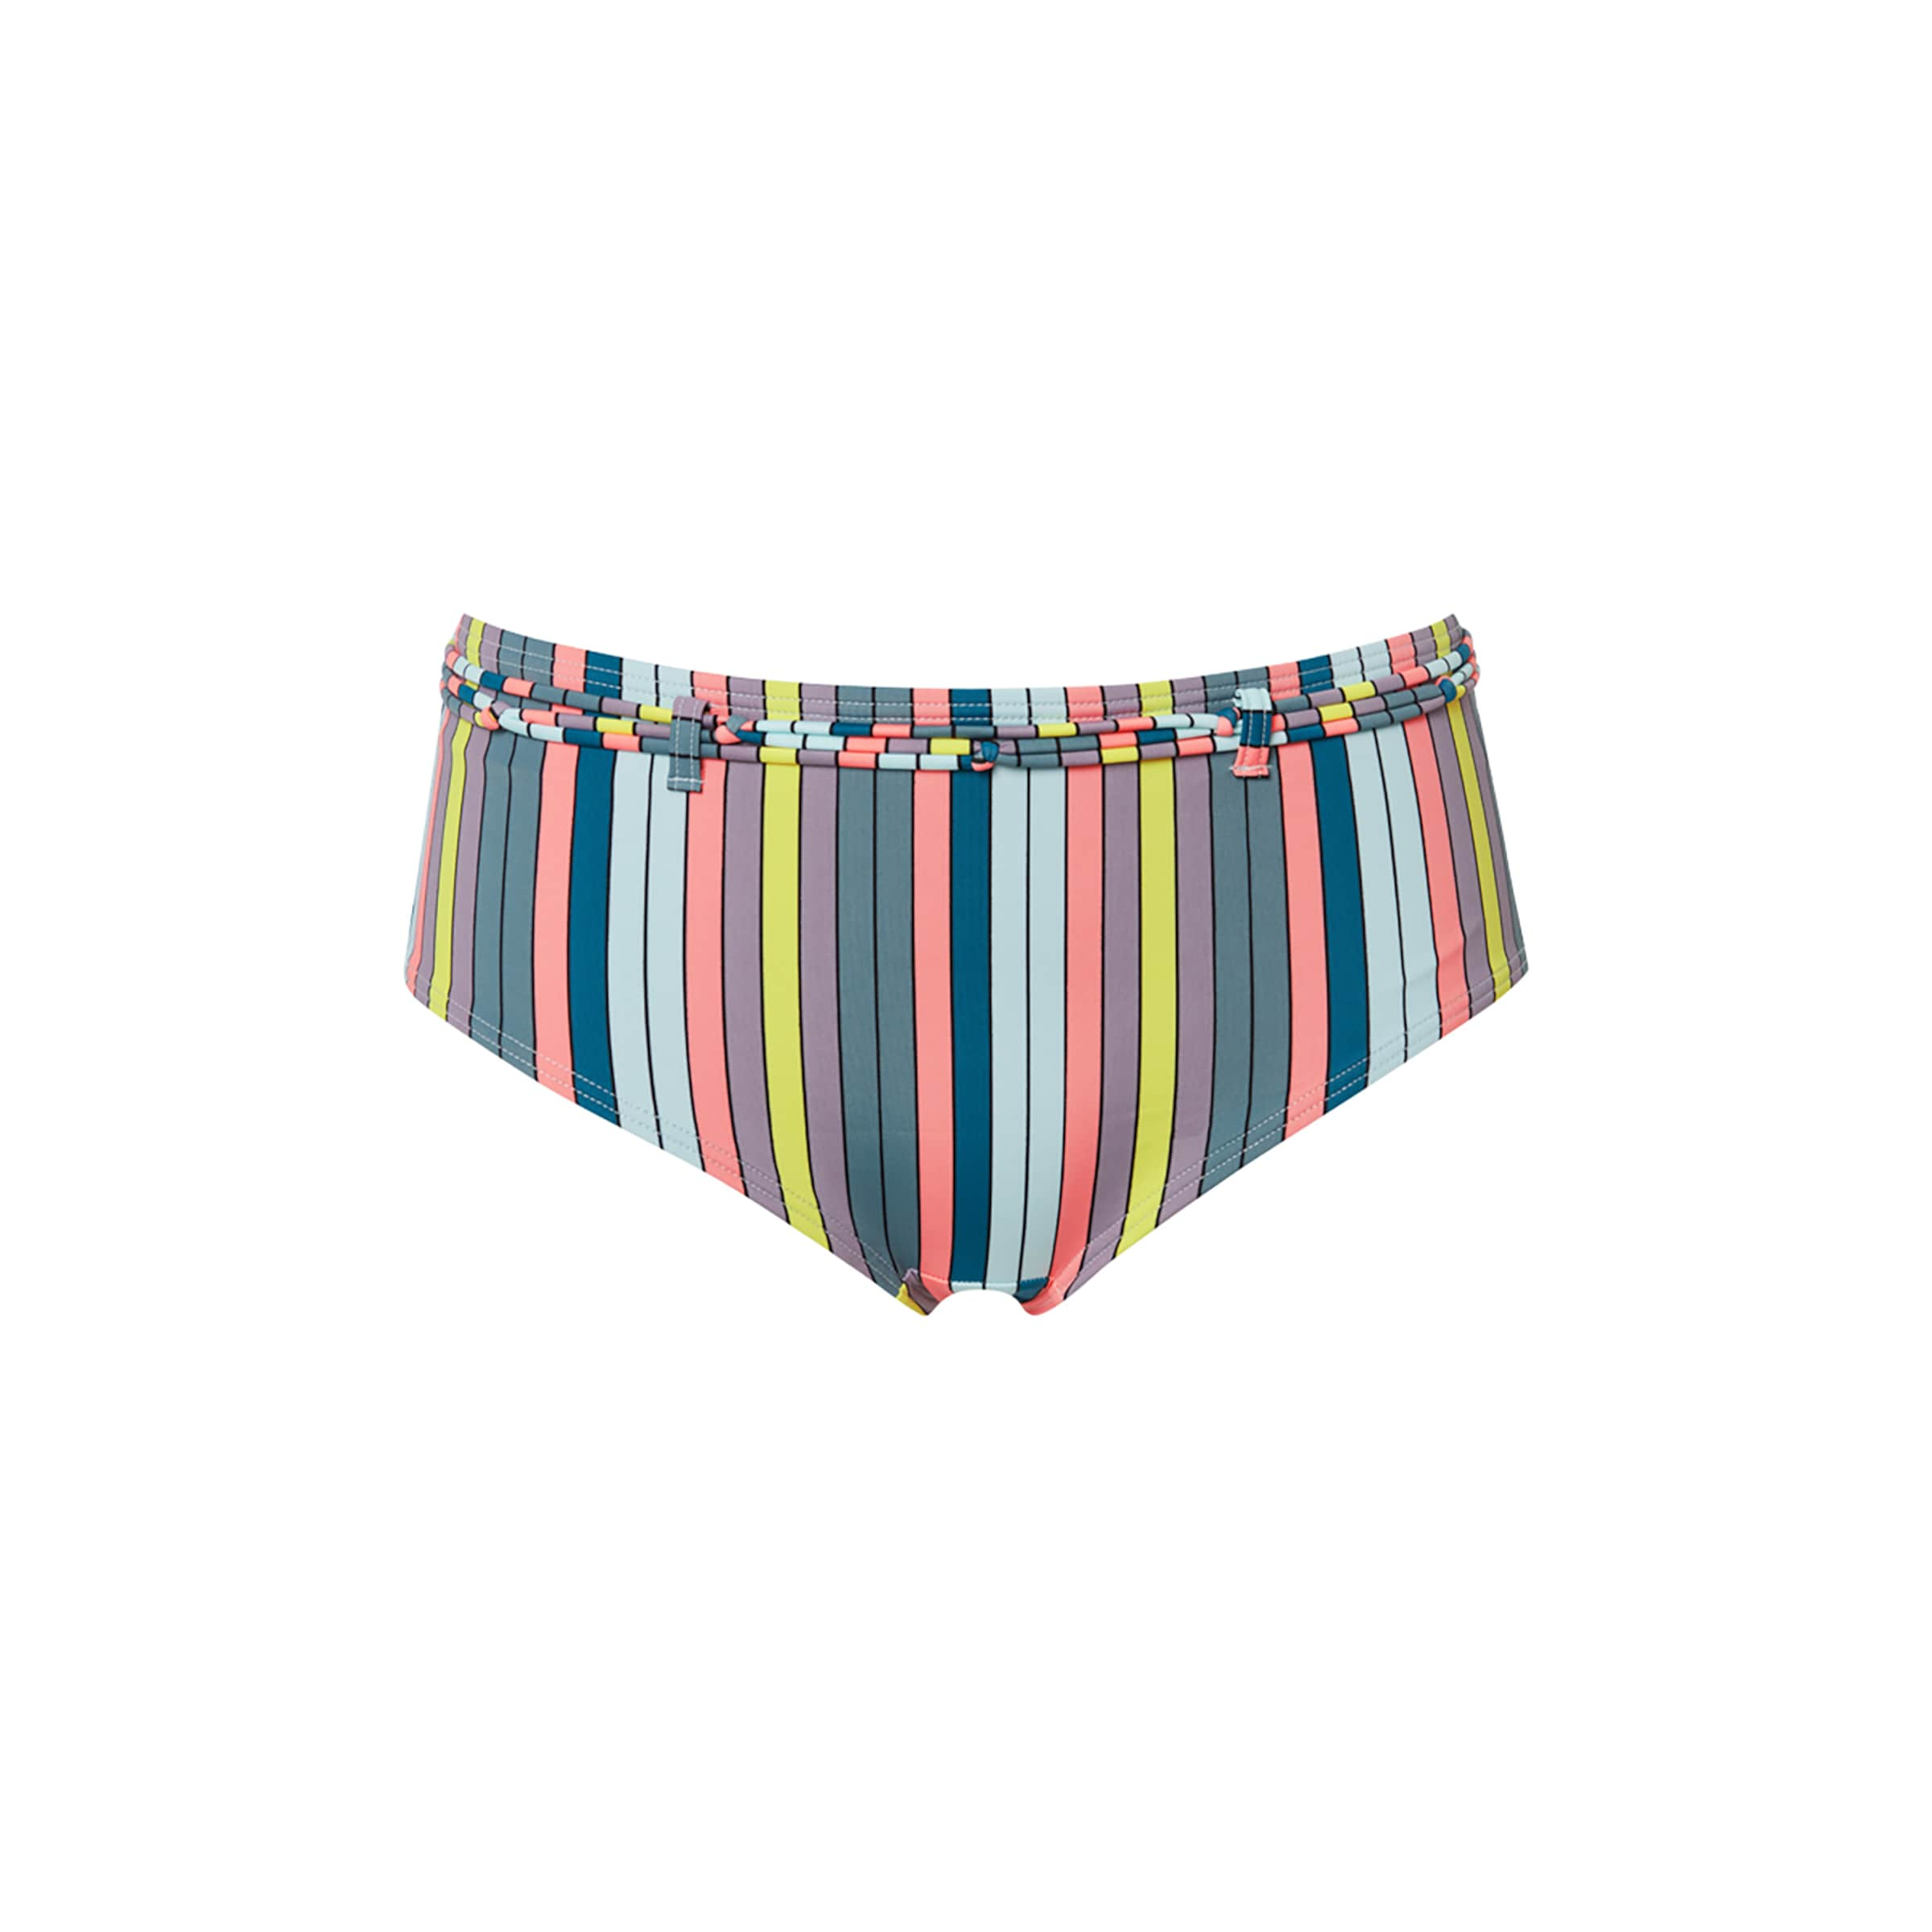 En Mix Rose Bikini Bas O'neill Ancienne Bleu ClairVert Bottom' De 'palma lJc3u1FKT